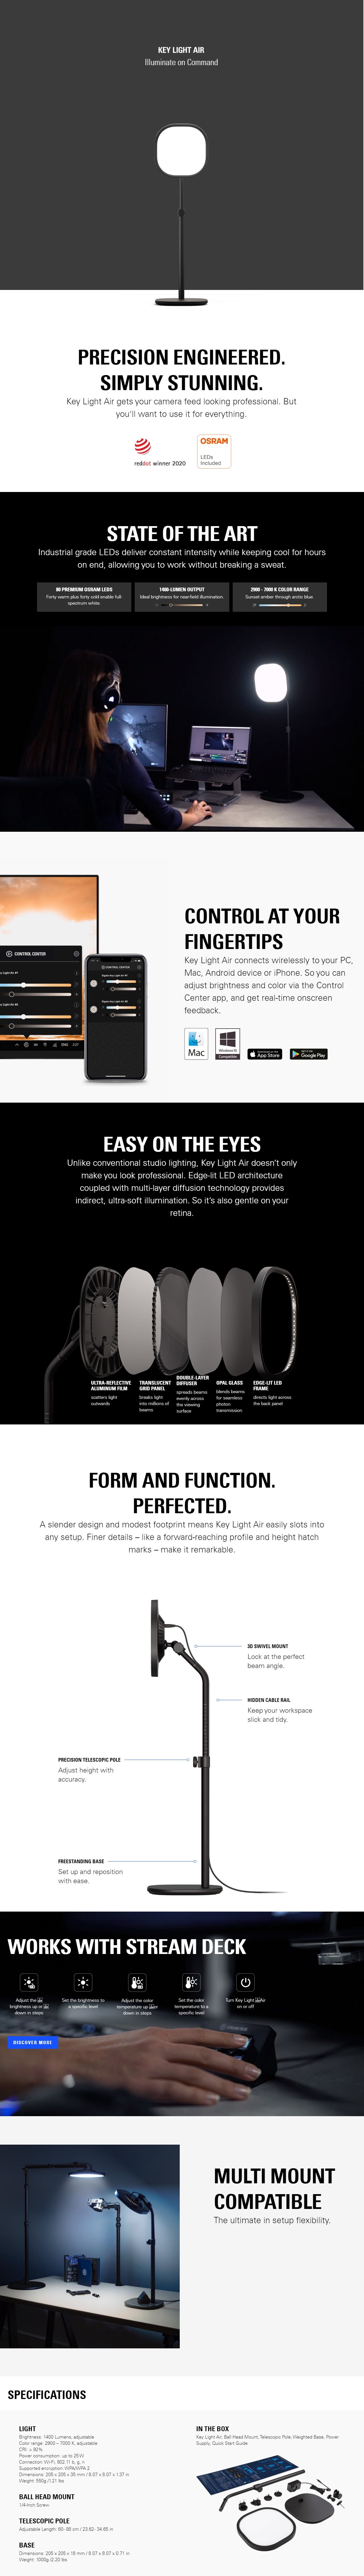 A large marketing image providing additional information about the product Elgato Key Light Air - Additional alt info not provided